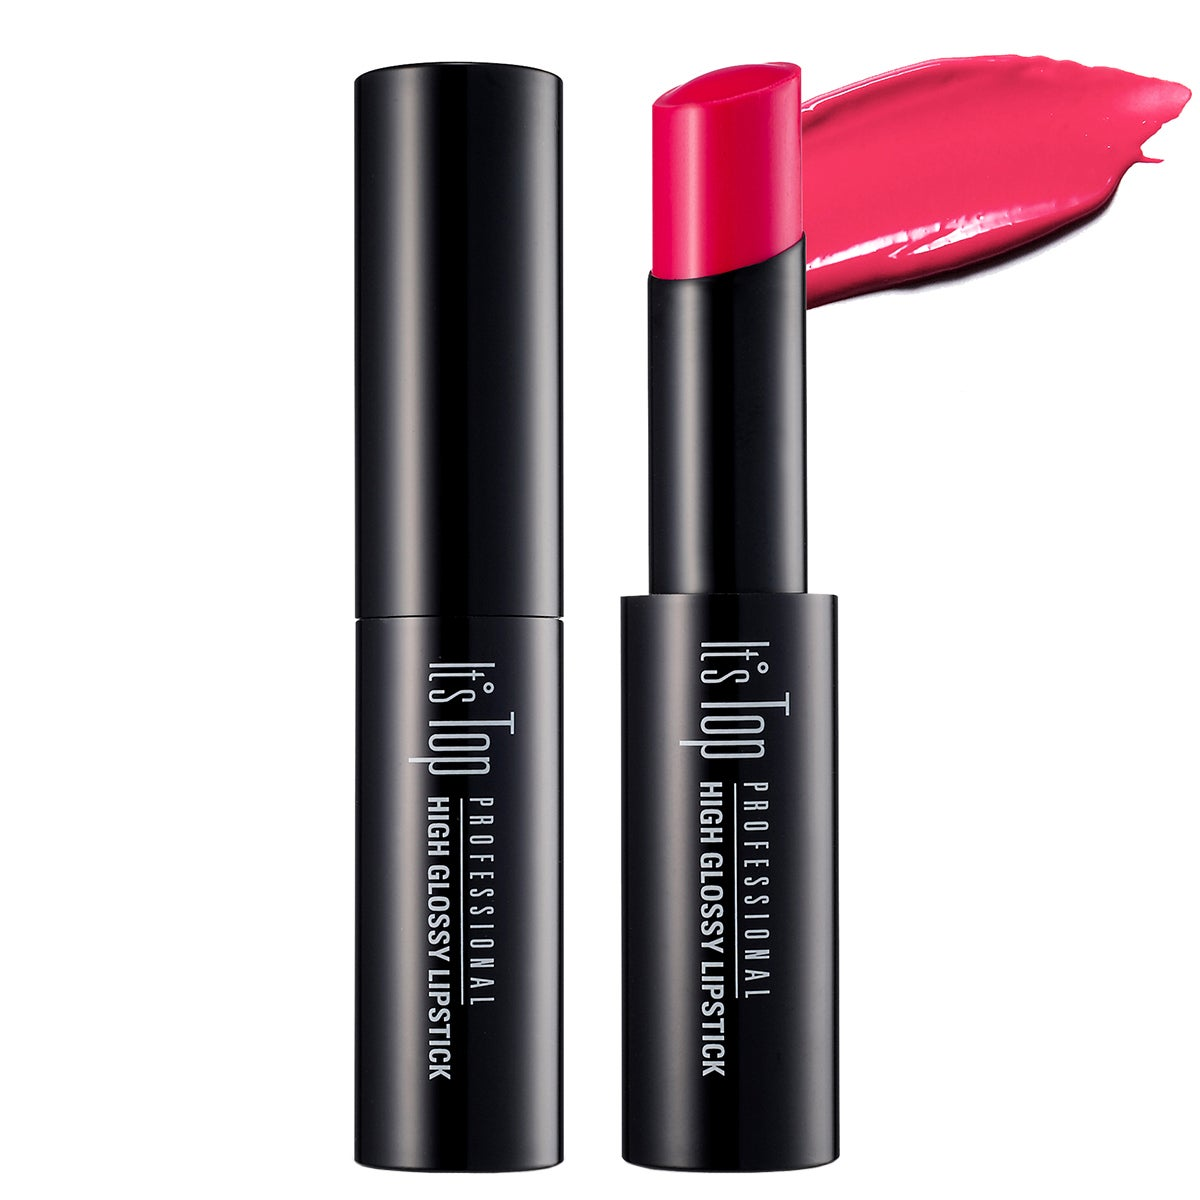 It'S SKIN Proffessional High Glossy Lipstick